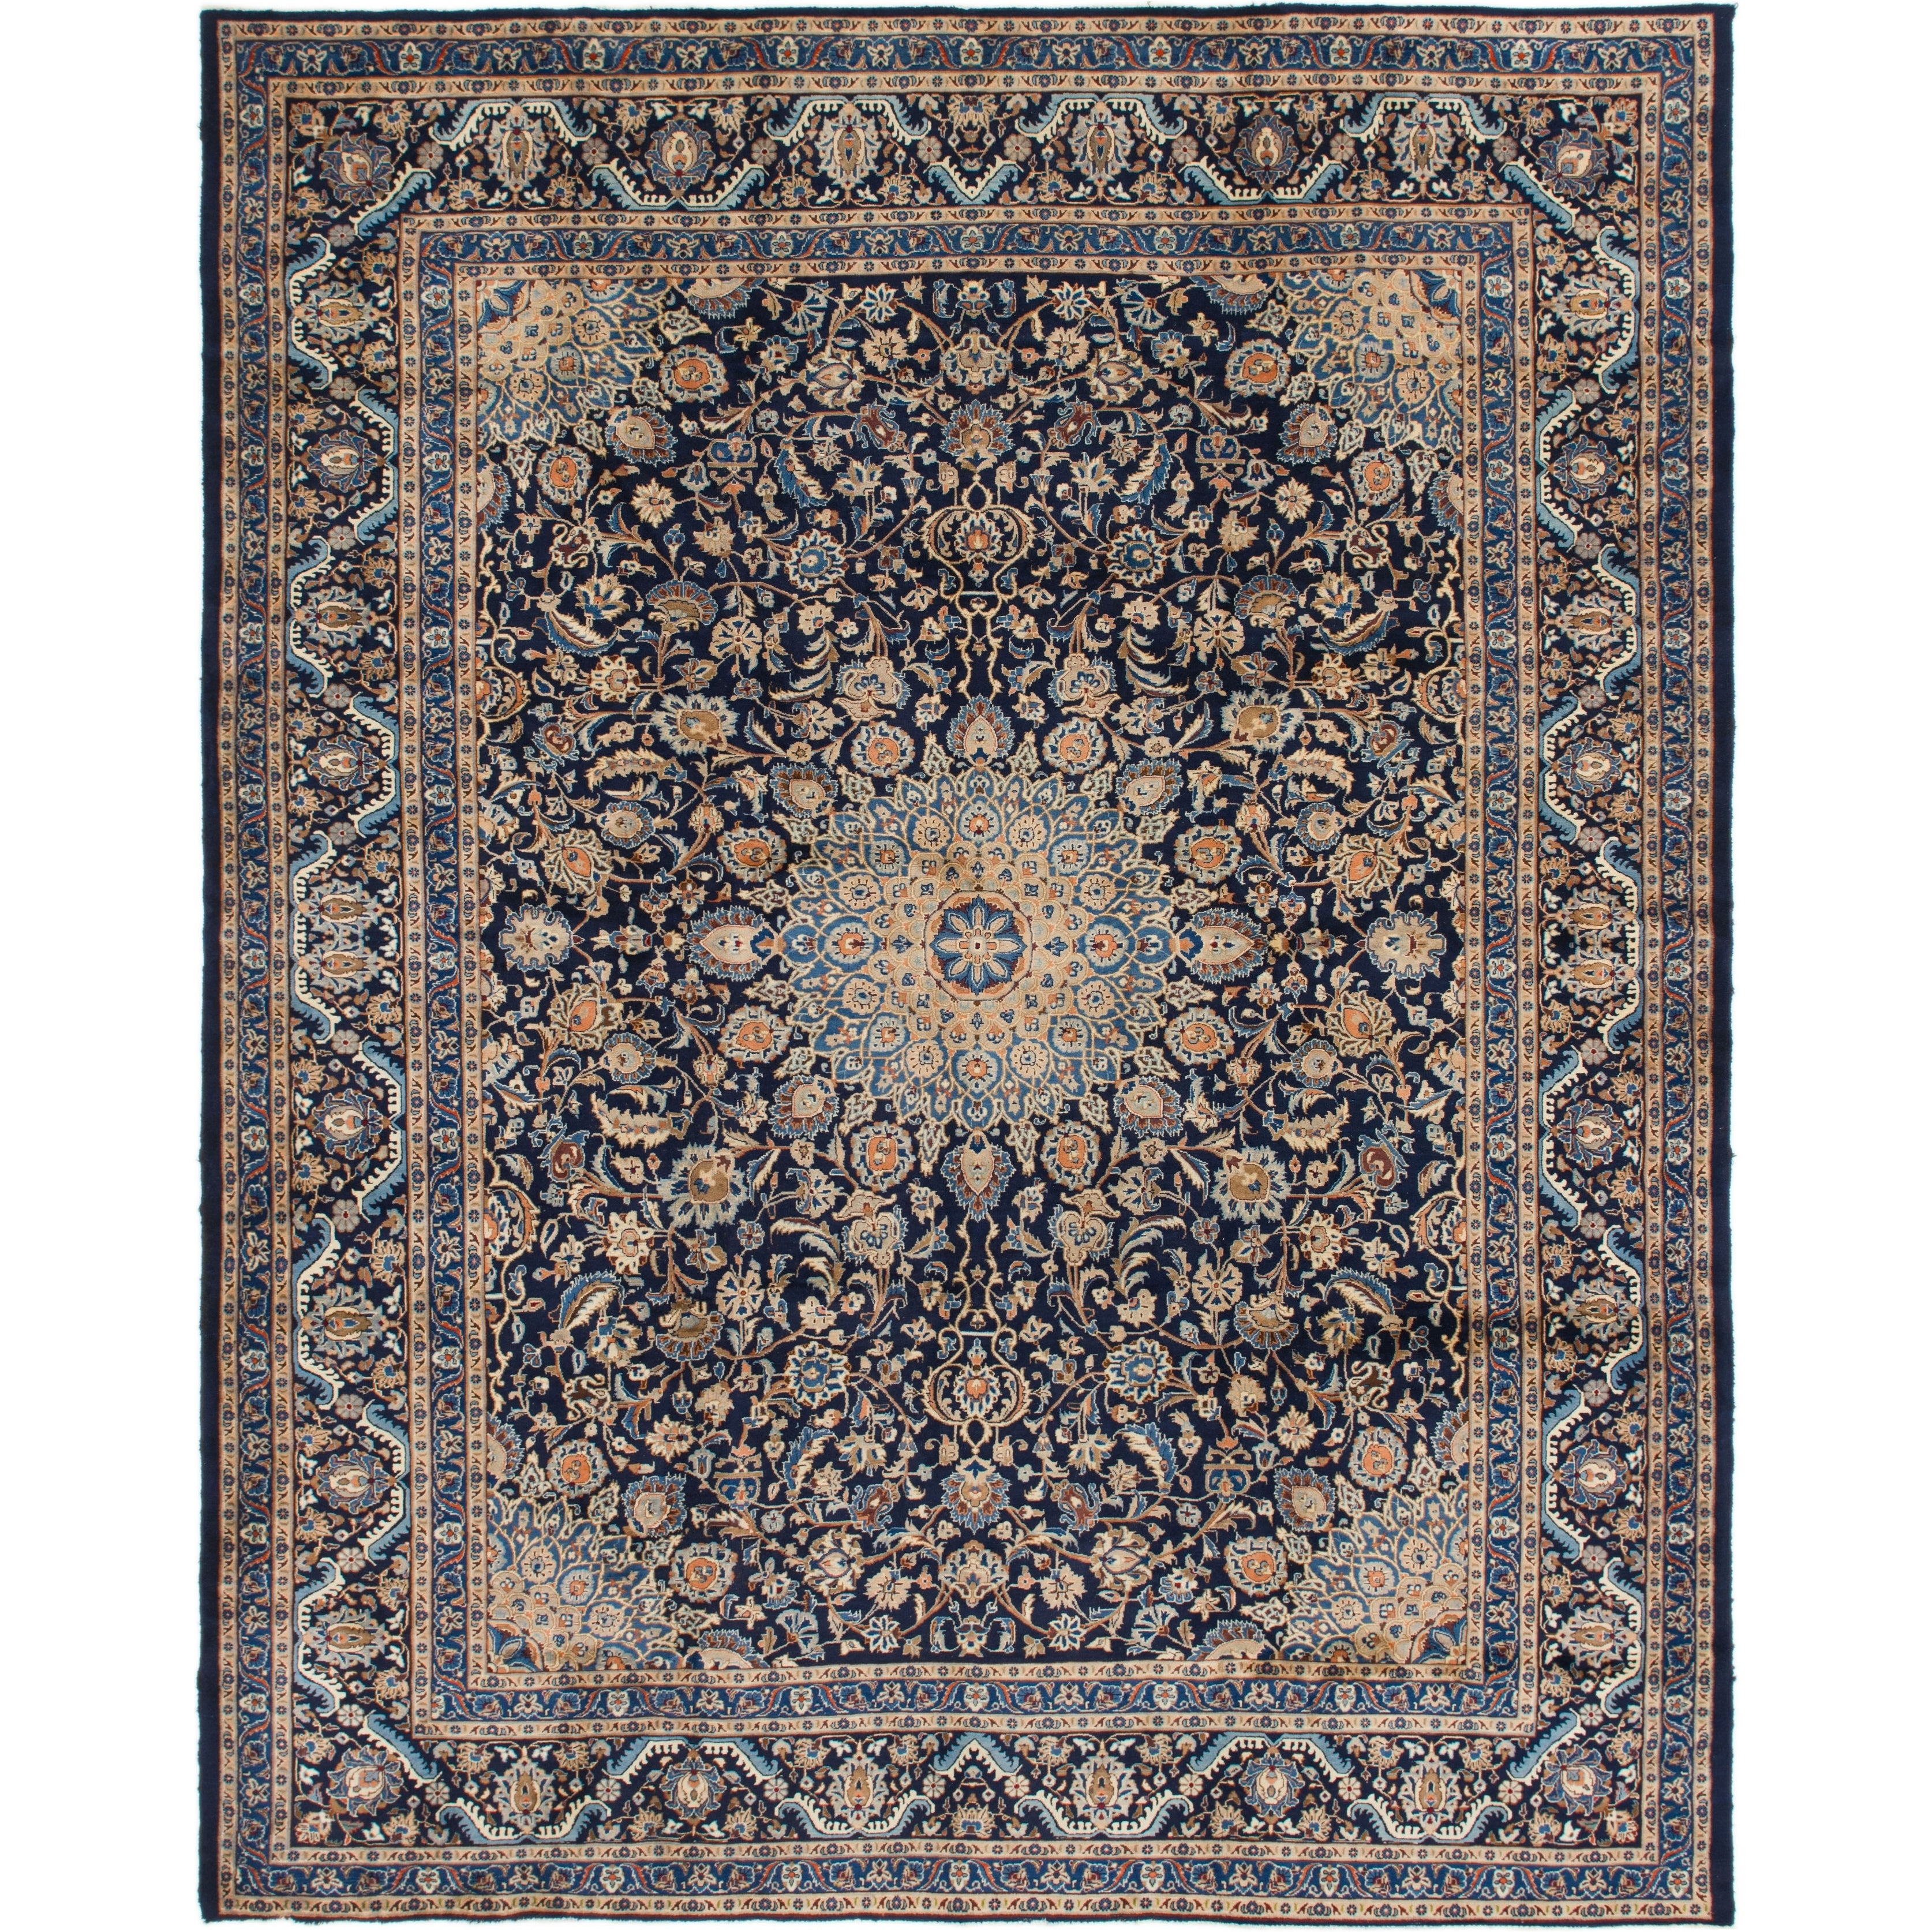 Hand Knotted Kashmar Semi Antique Wool Area Rug - 10 x 12 6 (Navy blue - 10 x 12 6)